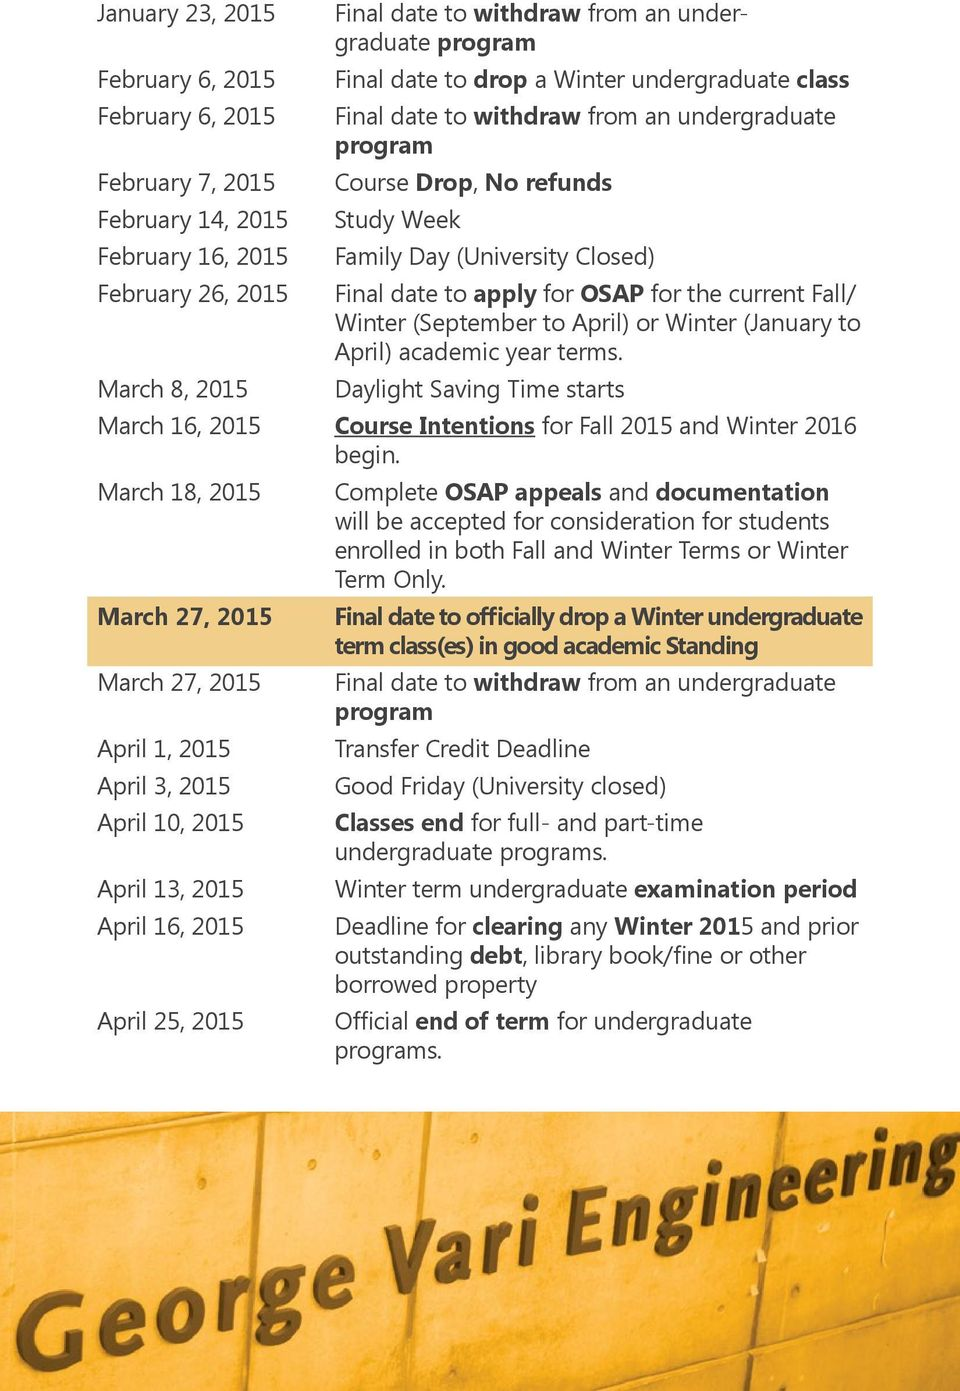 Winter (September to April) or Winter (January to April) academic year terms. March 8, 2015 Daylight Saving Time starts March 16, 2015 Course Intentions for Fall 2015 and Winter 2016 begin.